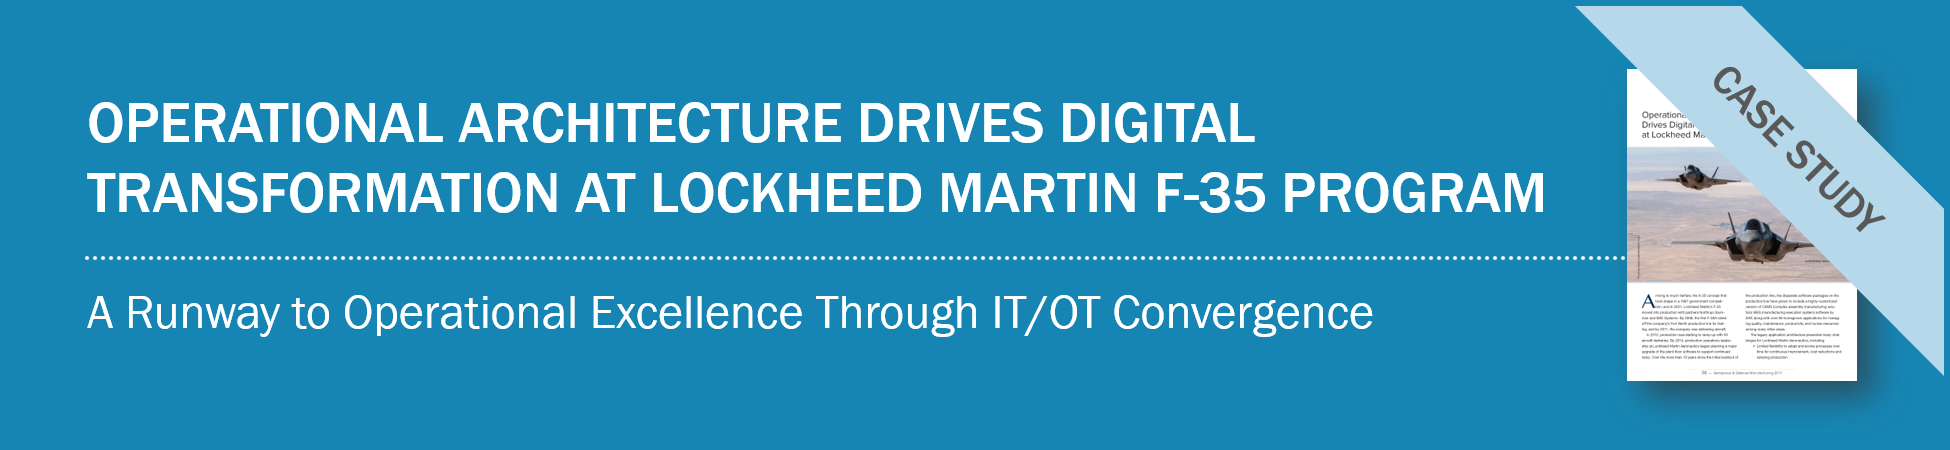 Operational Architecture Drives Digital Transformation at Lockheed Martin F-35 Program